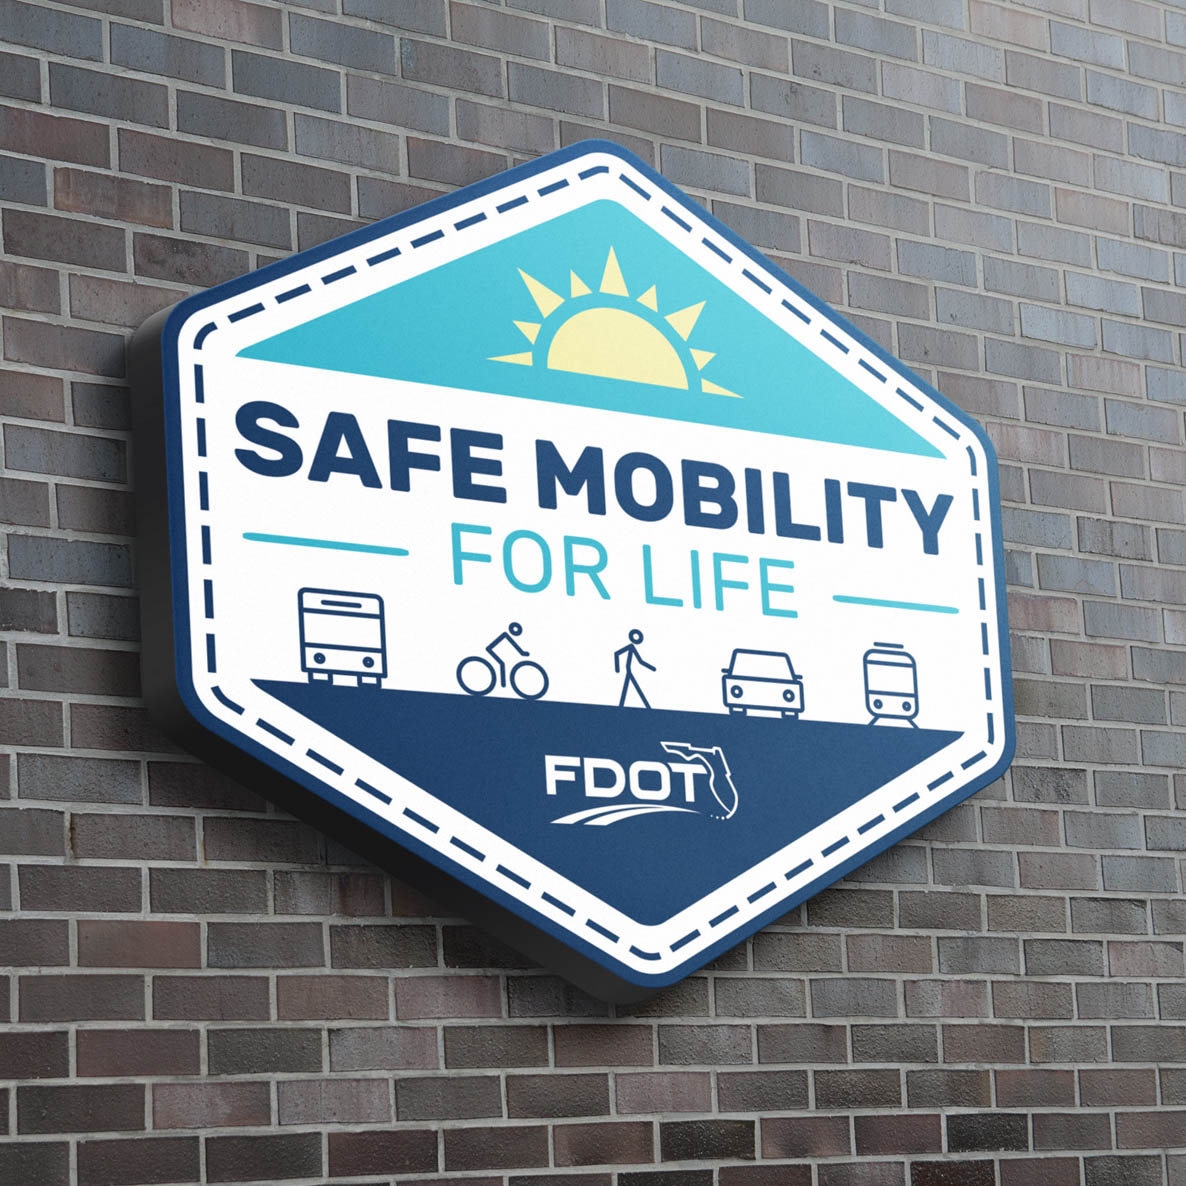 Safe Mobility for Life